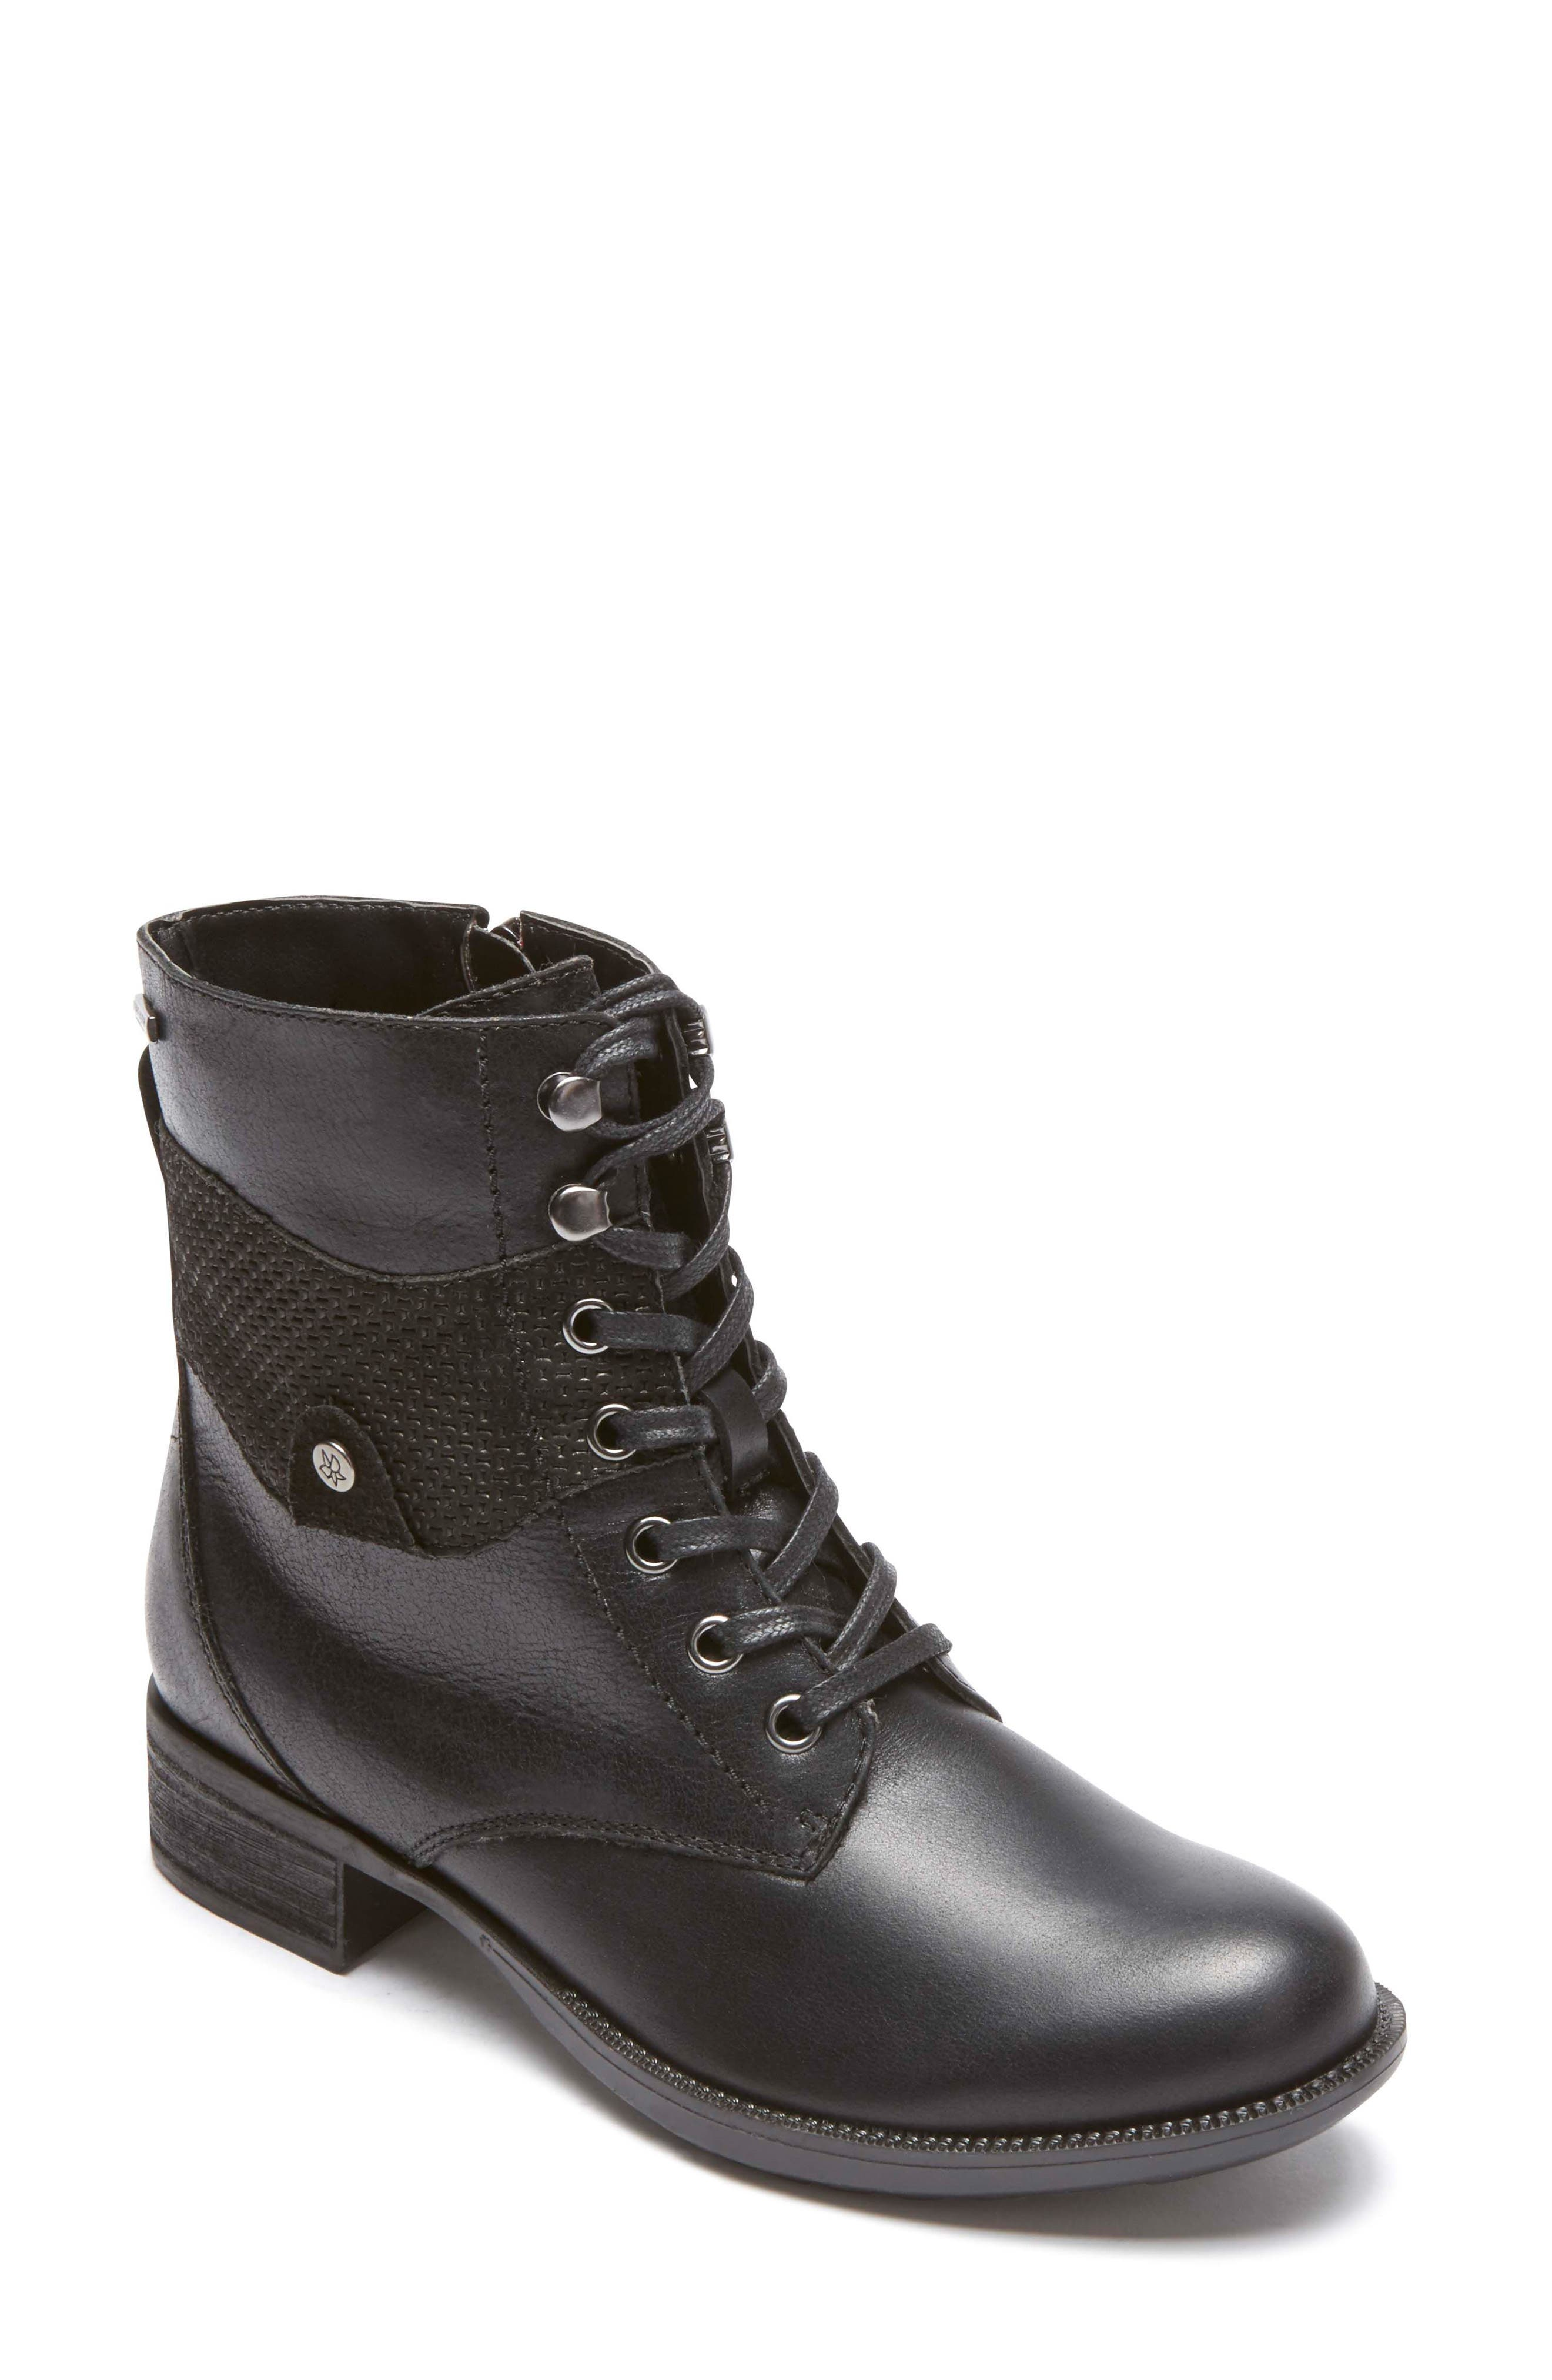 Copley Waterproof Combat Boot,                             Main thumbnail 1, color,                             Black Leather